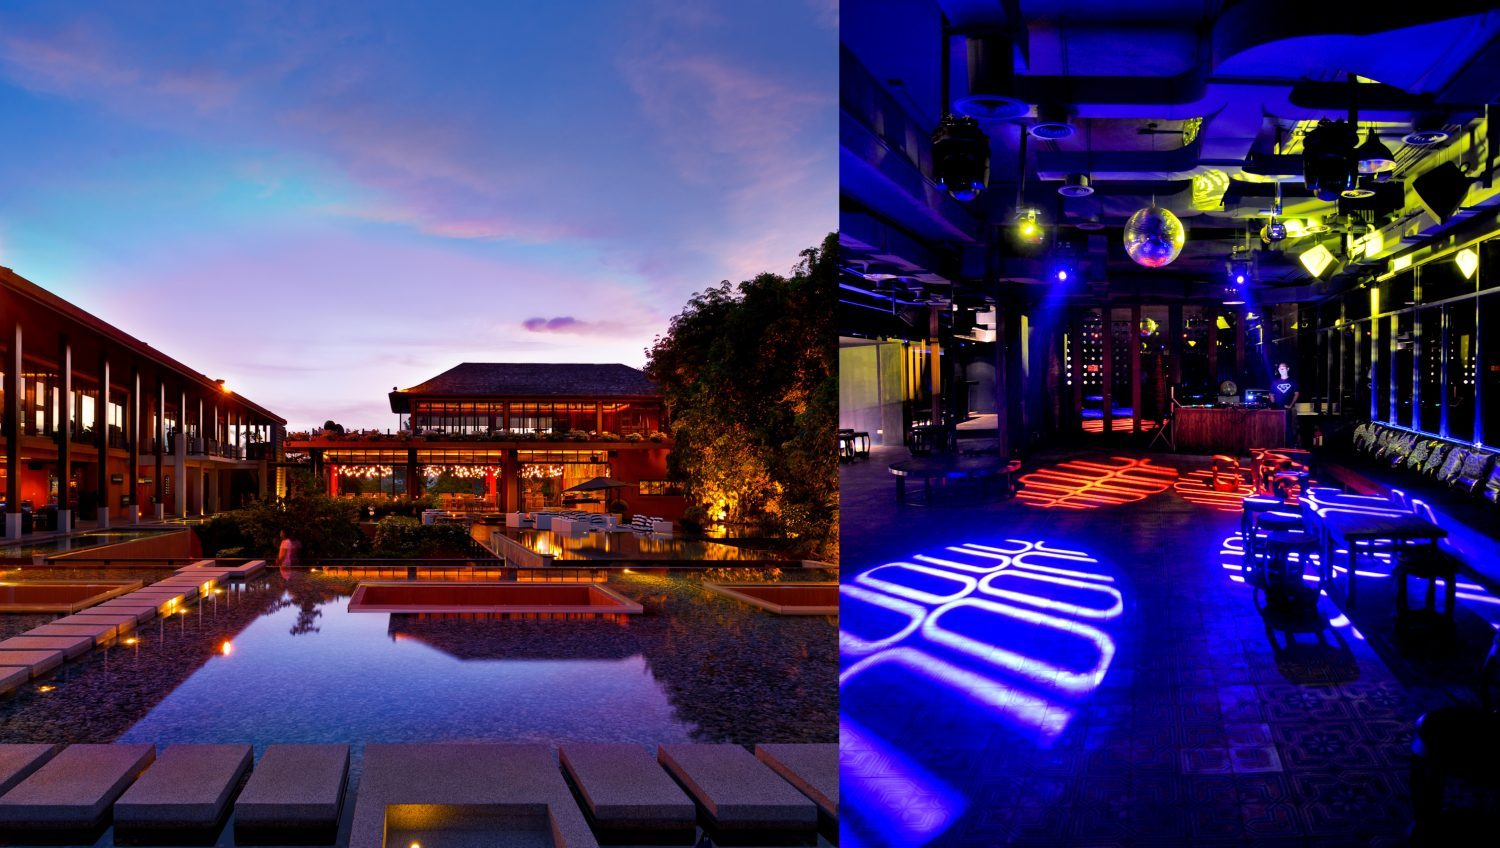 2-baba88-best-bar-phuket-hiphop-music-sri-panwa-baba- phuket-luxury-pool-villa-thailand